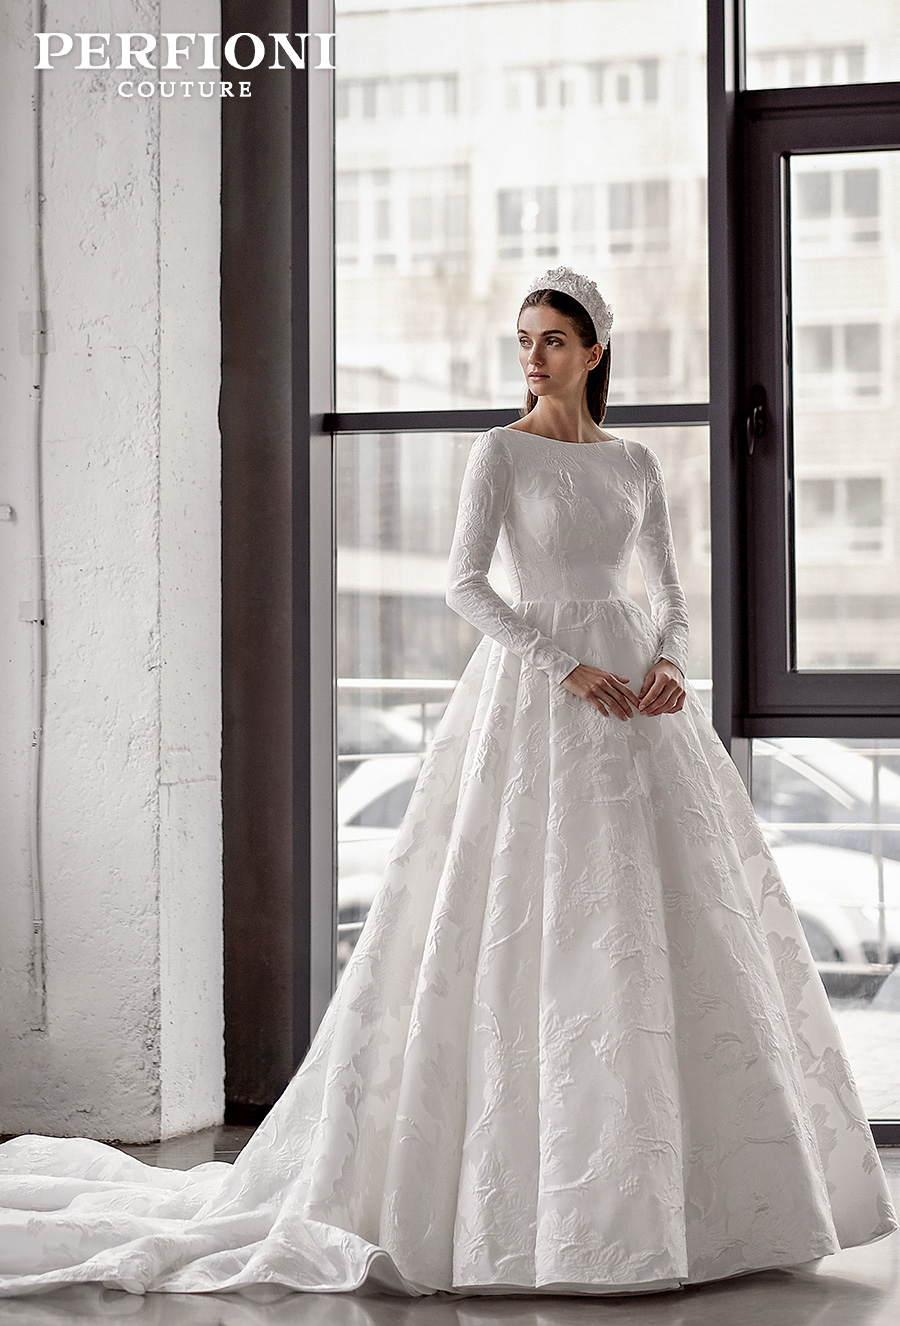 perfioni 2020 love season bridal long sleeves bateau neck full embellisment simple princess a line wedding dress backless royal train (gabriella) mv